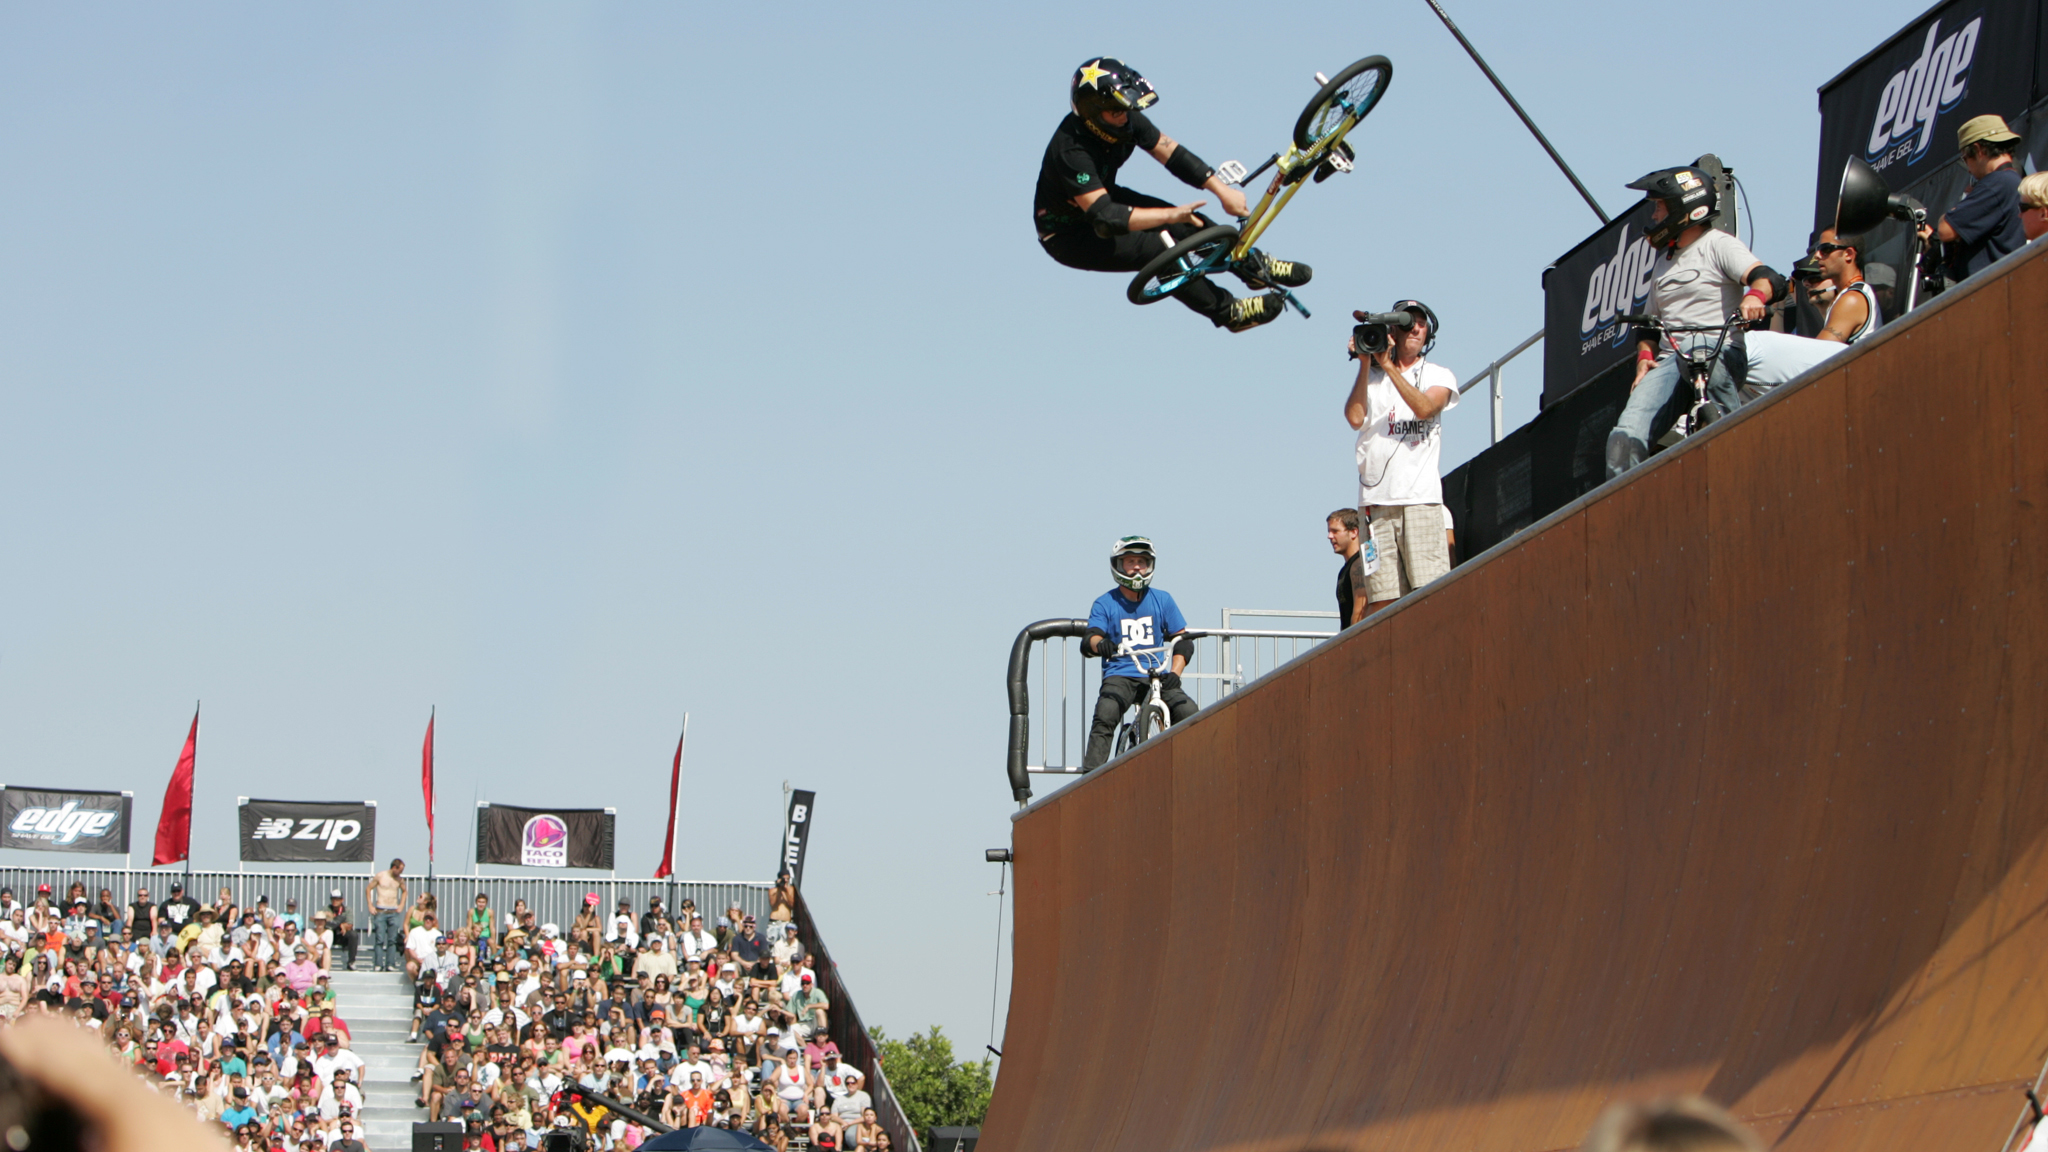 X Games 14, 2008